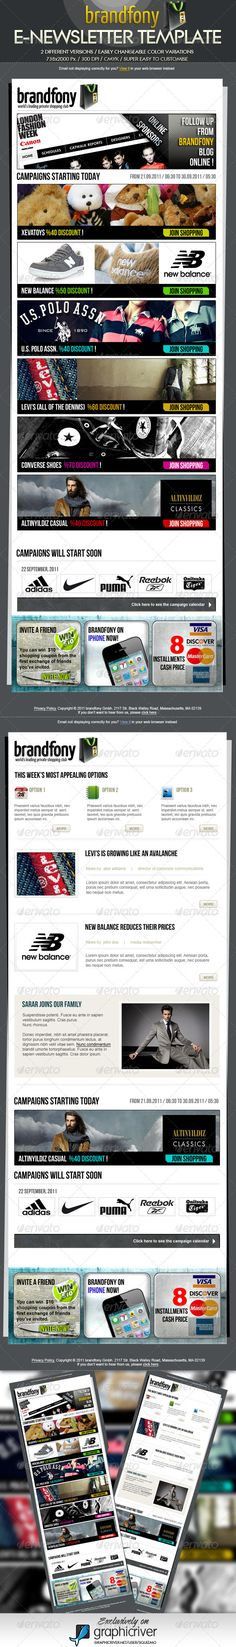 Buy Brandfony E-Newsletter Template by squizmo on GraphicRiver. The template comes in psd format, and you can edit the file in Adobe Photoshop. Layered Photoshop file organized in f. Free Website Templates, Email Templates, Newsletter Templates, Template Web, Email Layout, 404 Pages, Web Design, Graphic Design